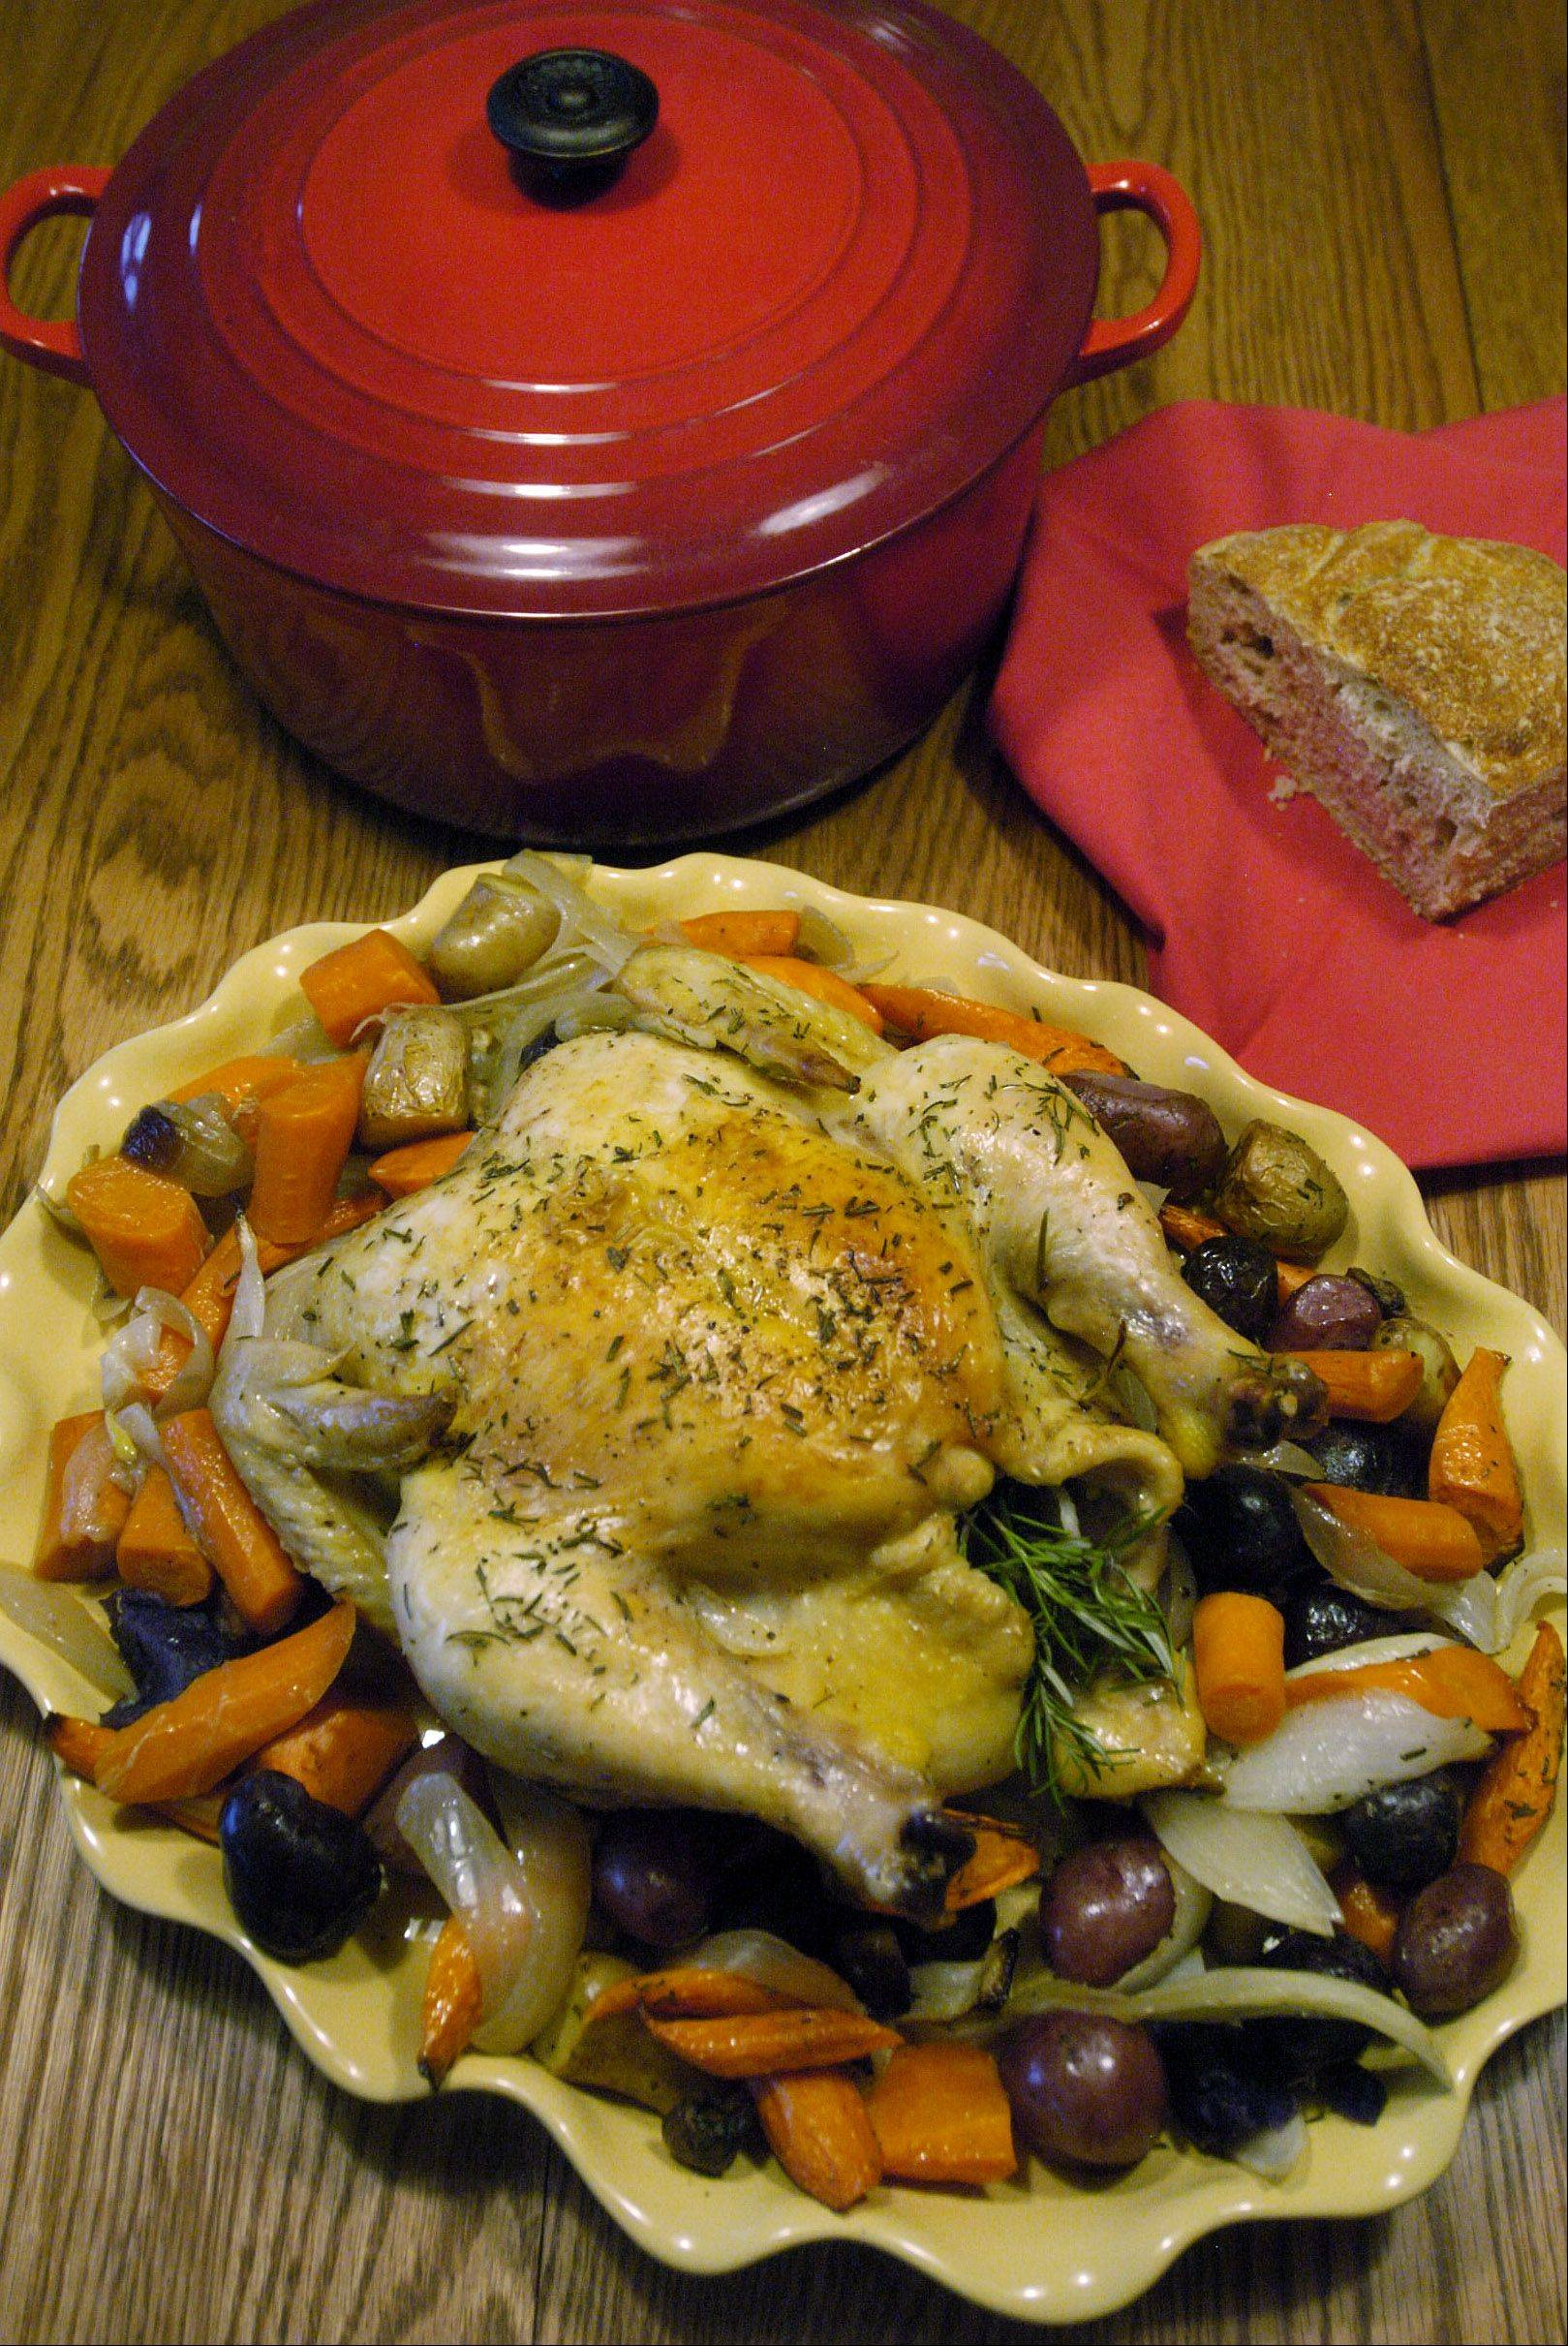 A Dutch oven can go from the stove-top to the oven, making this roasted chicken and vegetables a one-pot meal